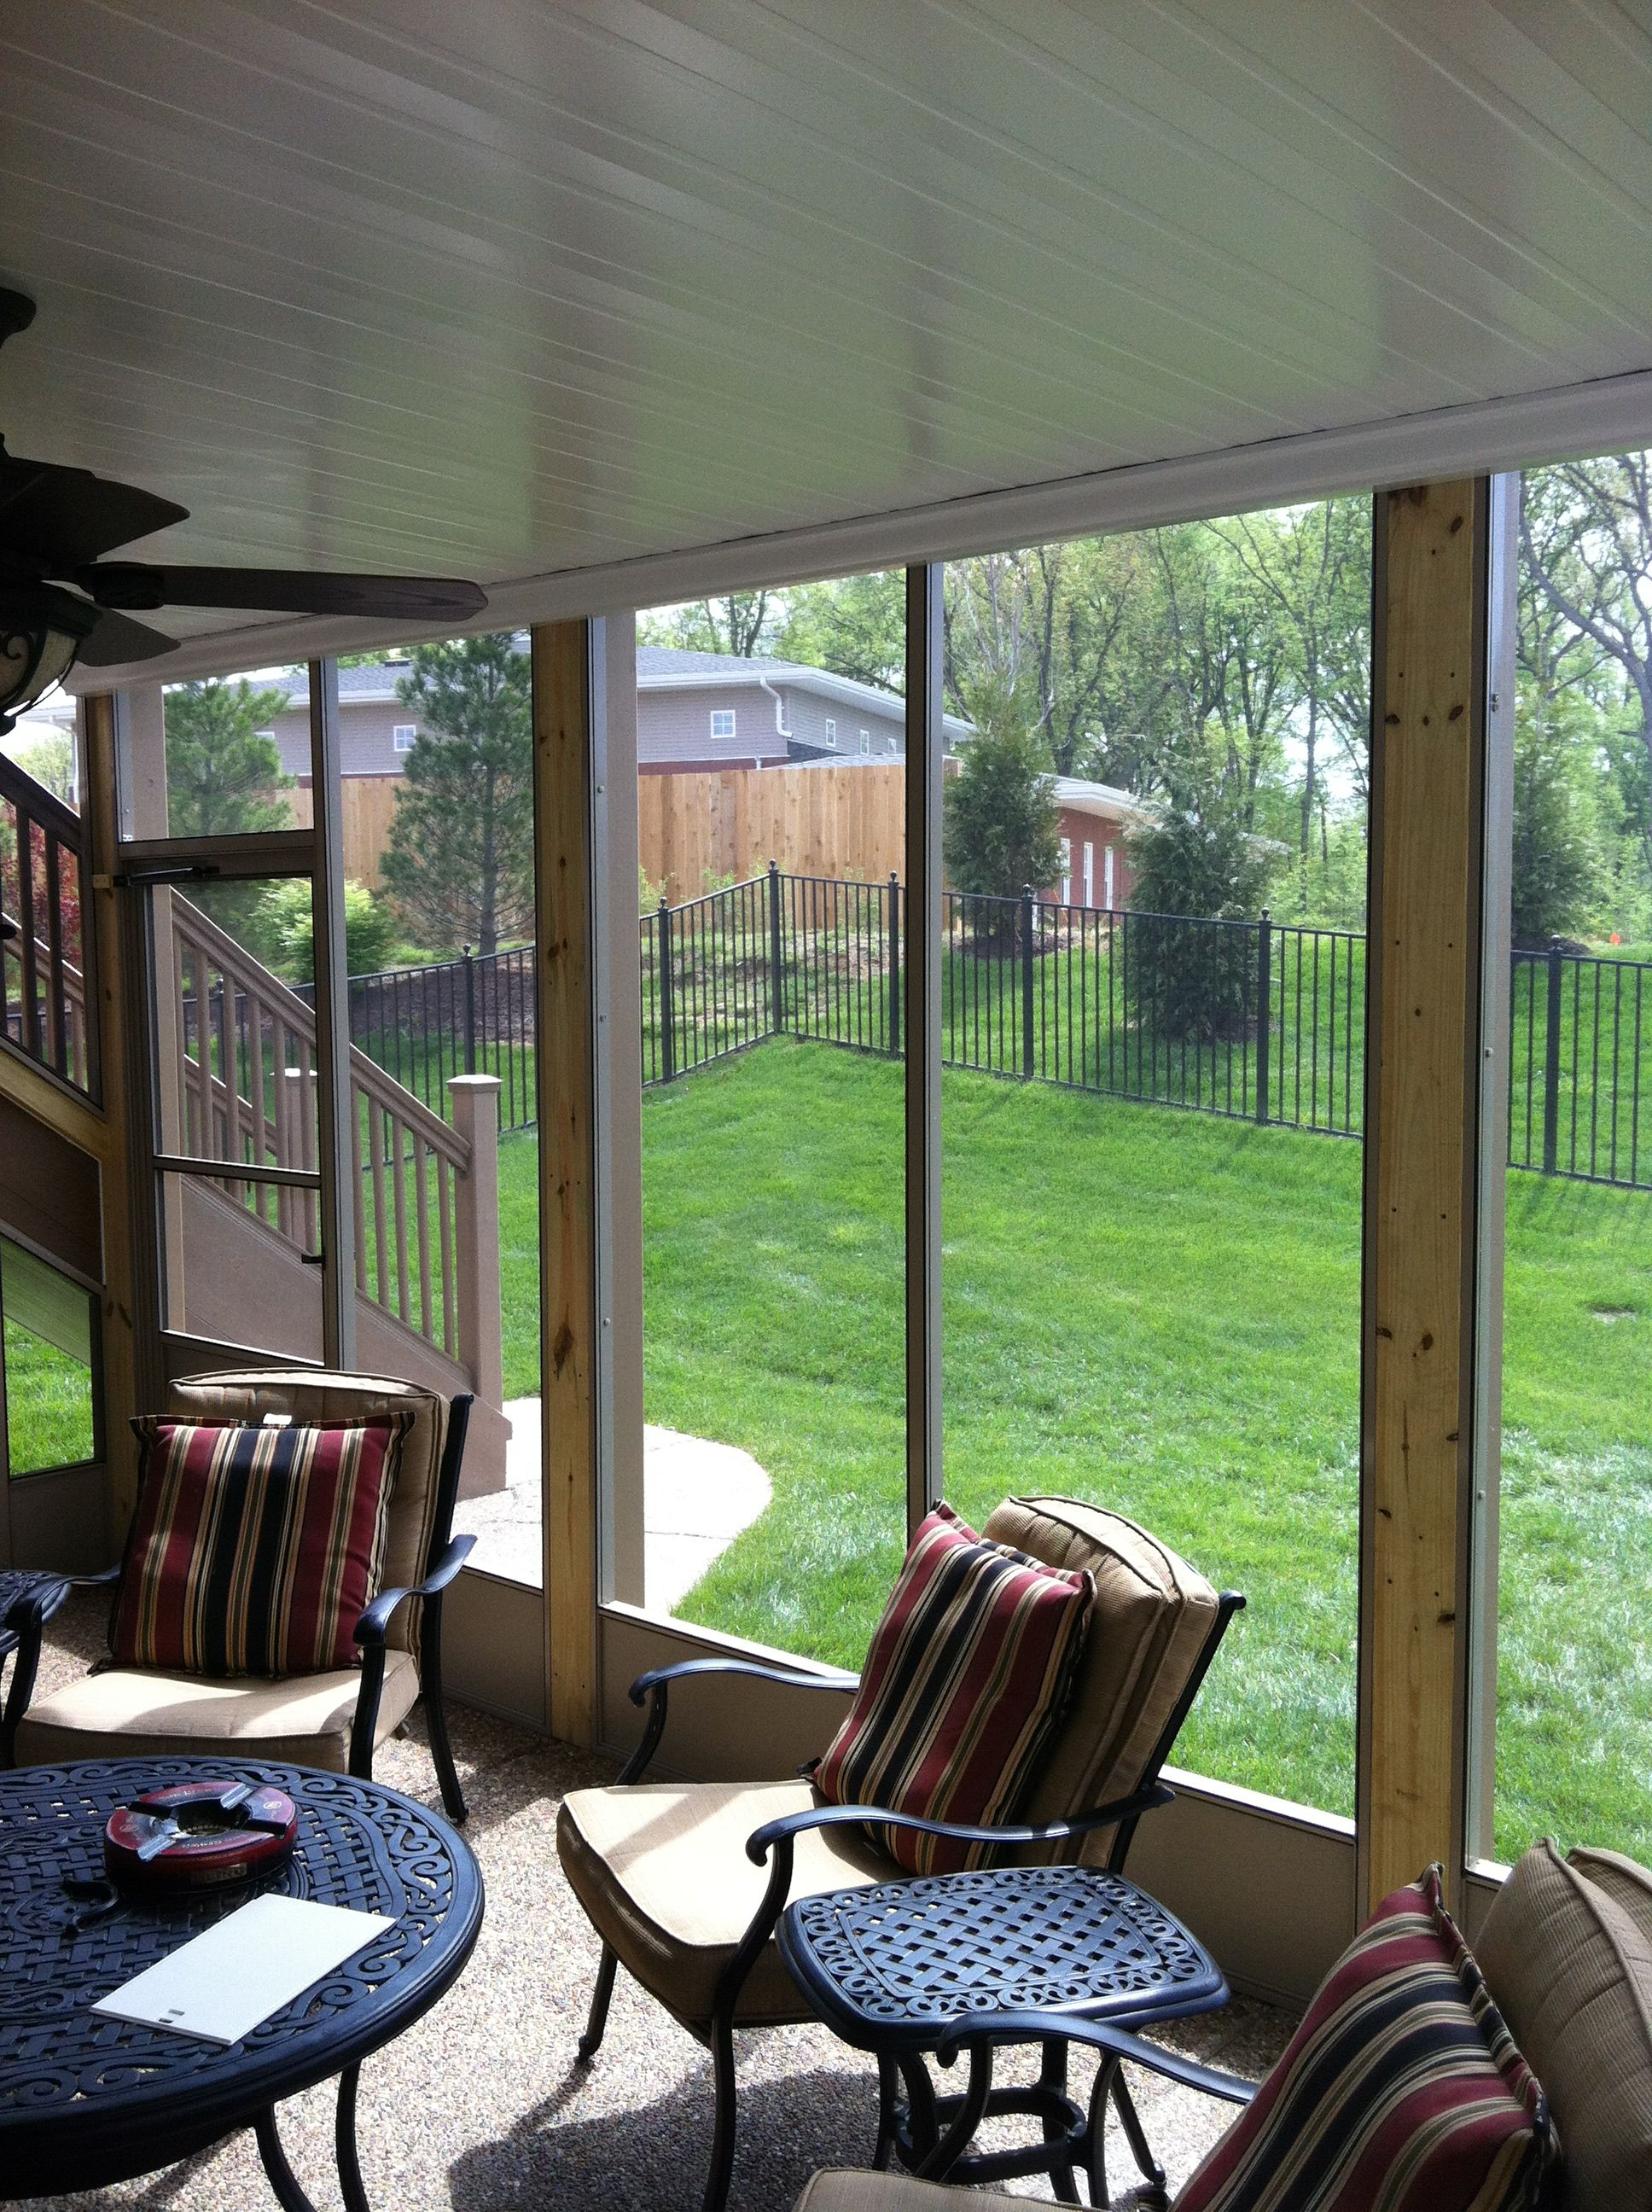 This beautiful screened in porch is a combination of a waterproof deck ceiling and classic screen walls.  RainTIght decks was truly grateful to be able to help this customer with there dry decks roof.  The underdeck ceiling was installed first with the screens second.